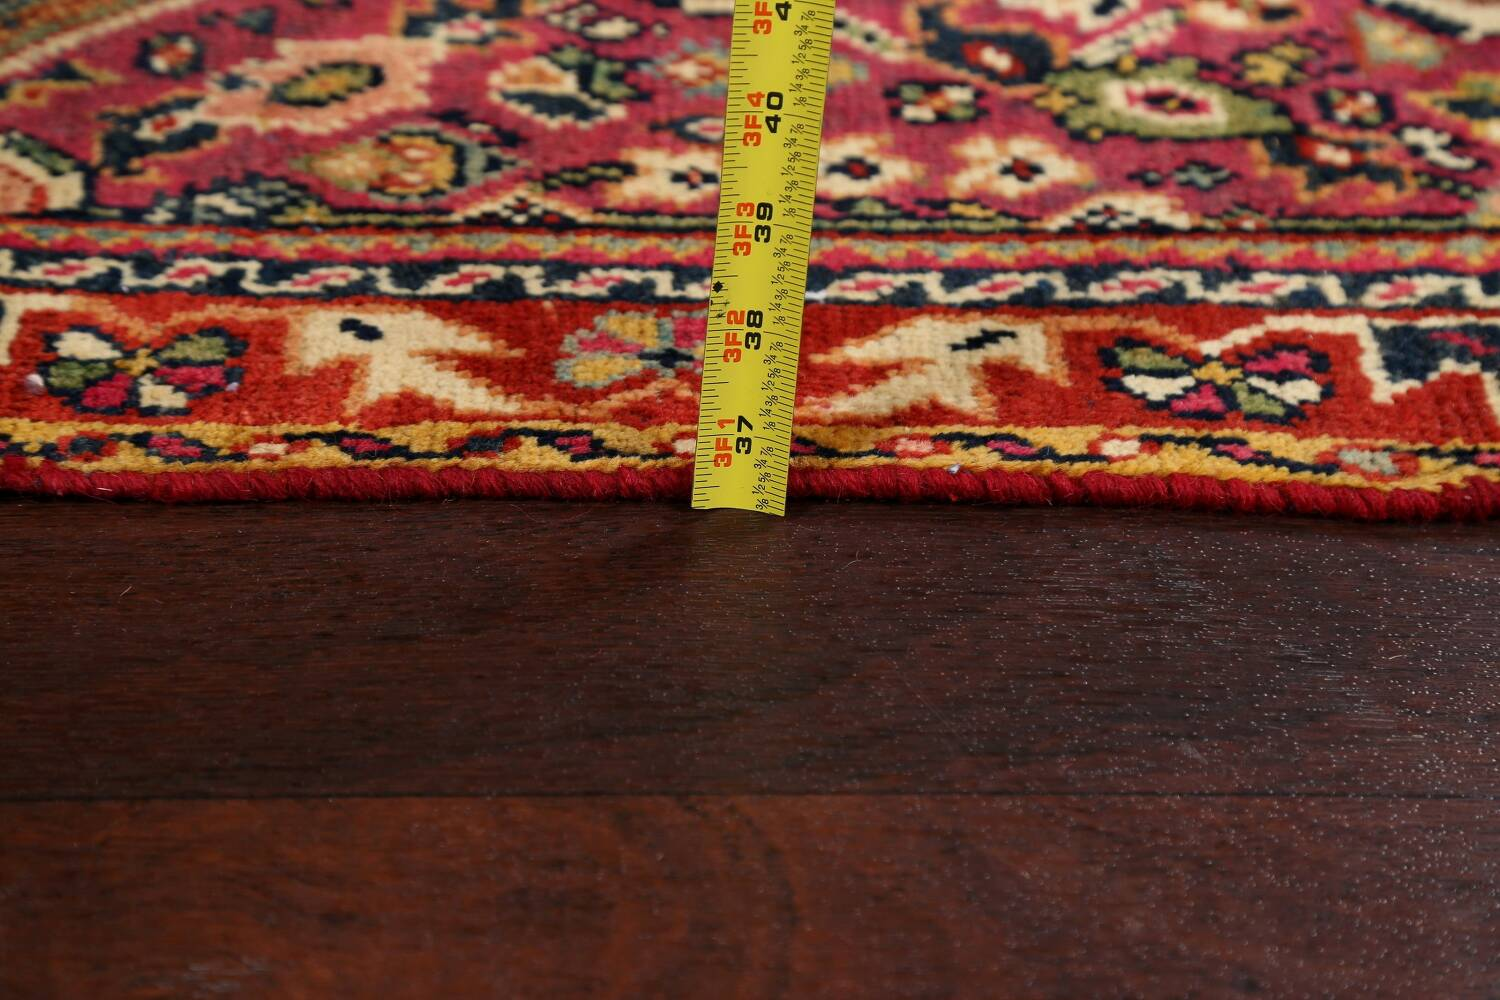 100% Vegetable Dye Antique Sultanabad Persian Area Rug 4x6 image 20